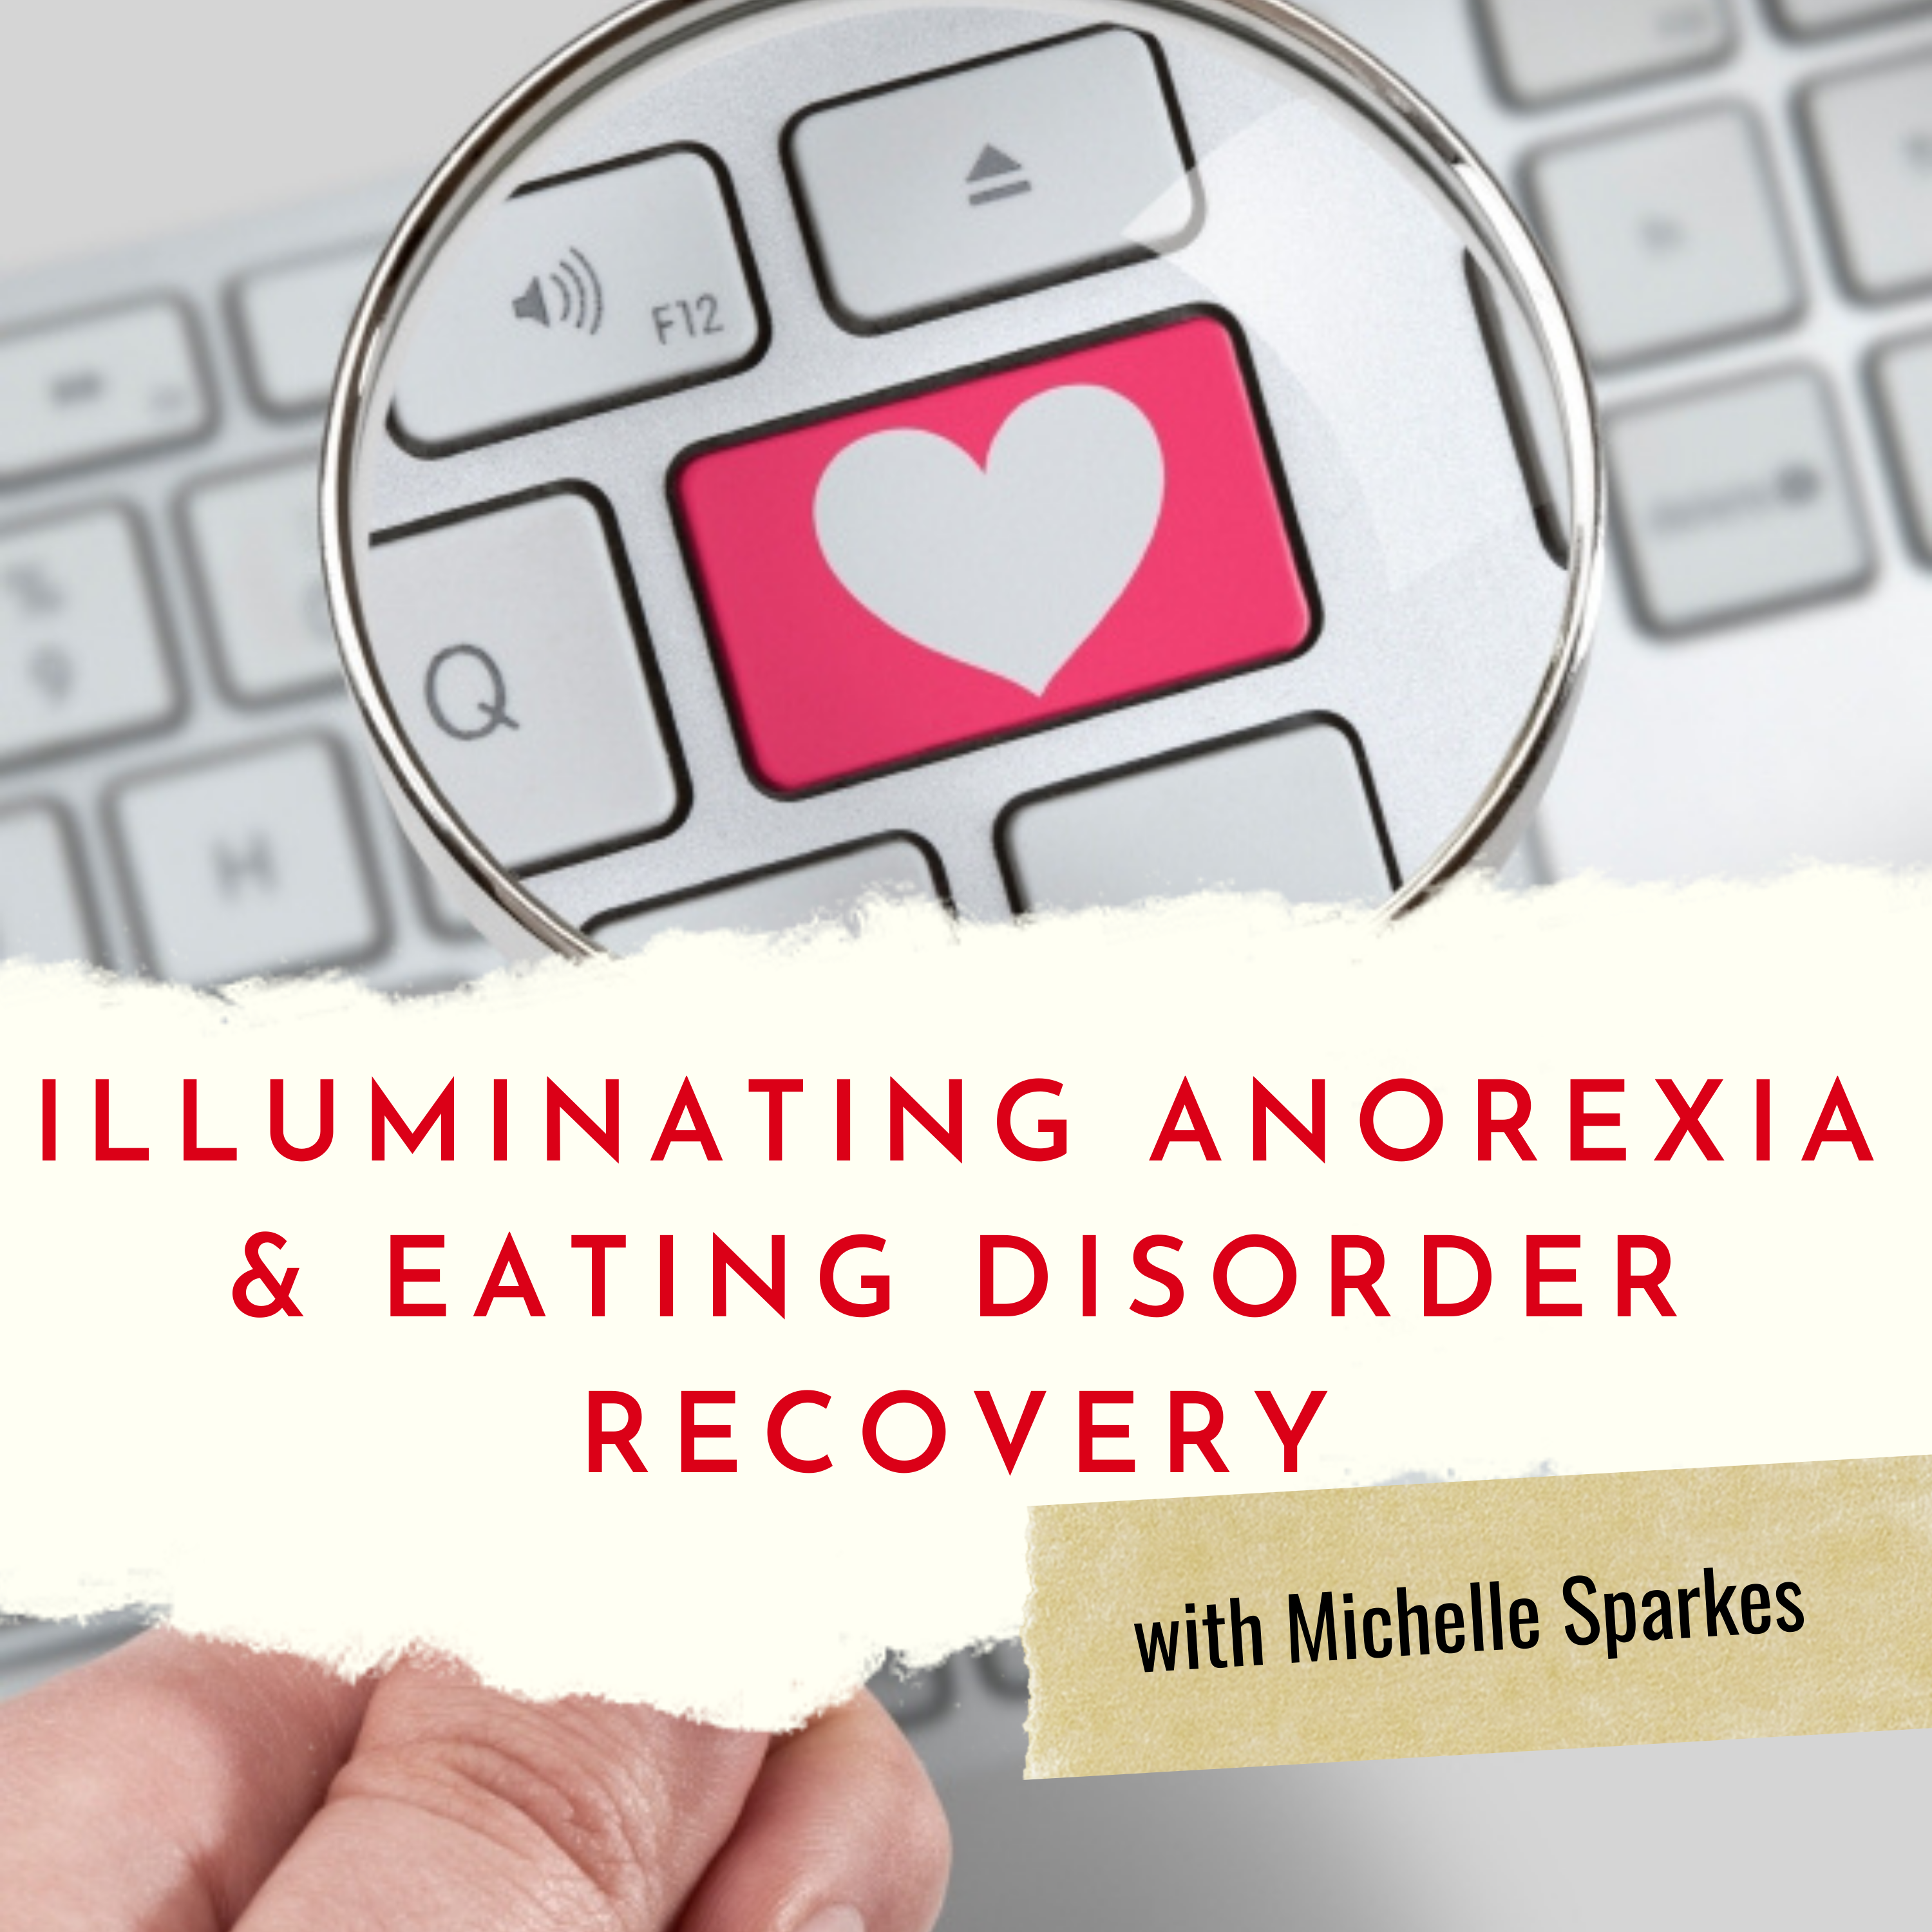 Illuminating Anorexia & Eating Disorder Recovery